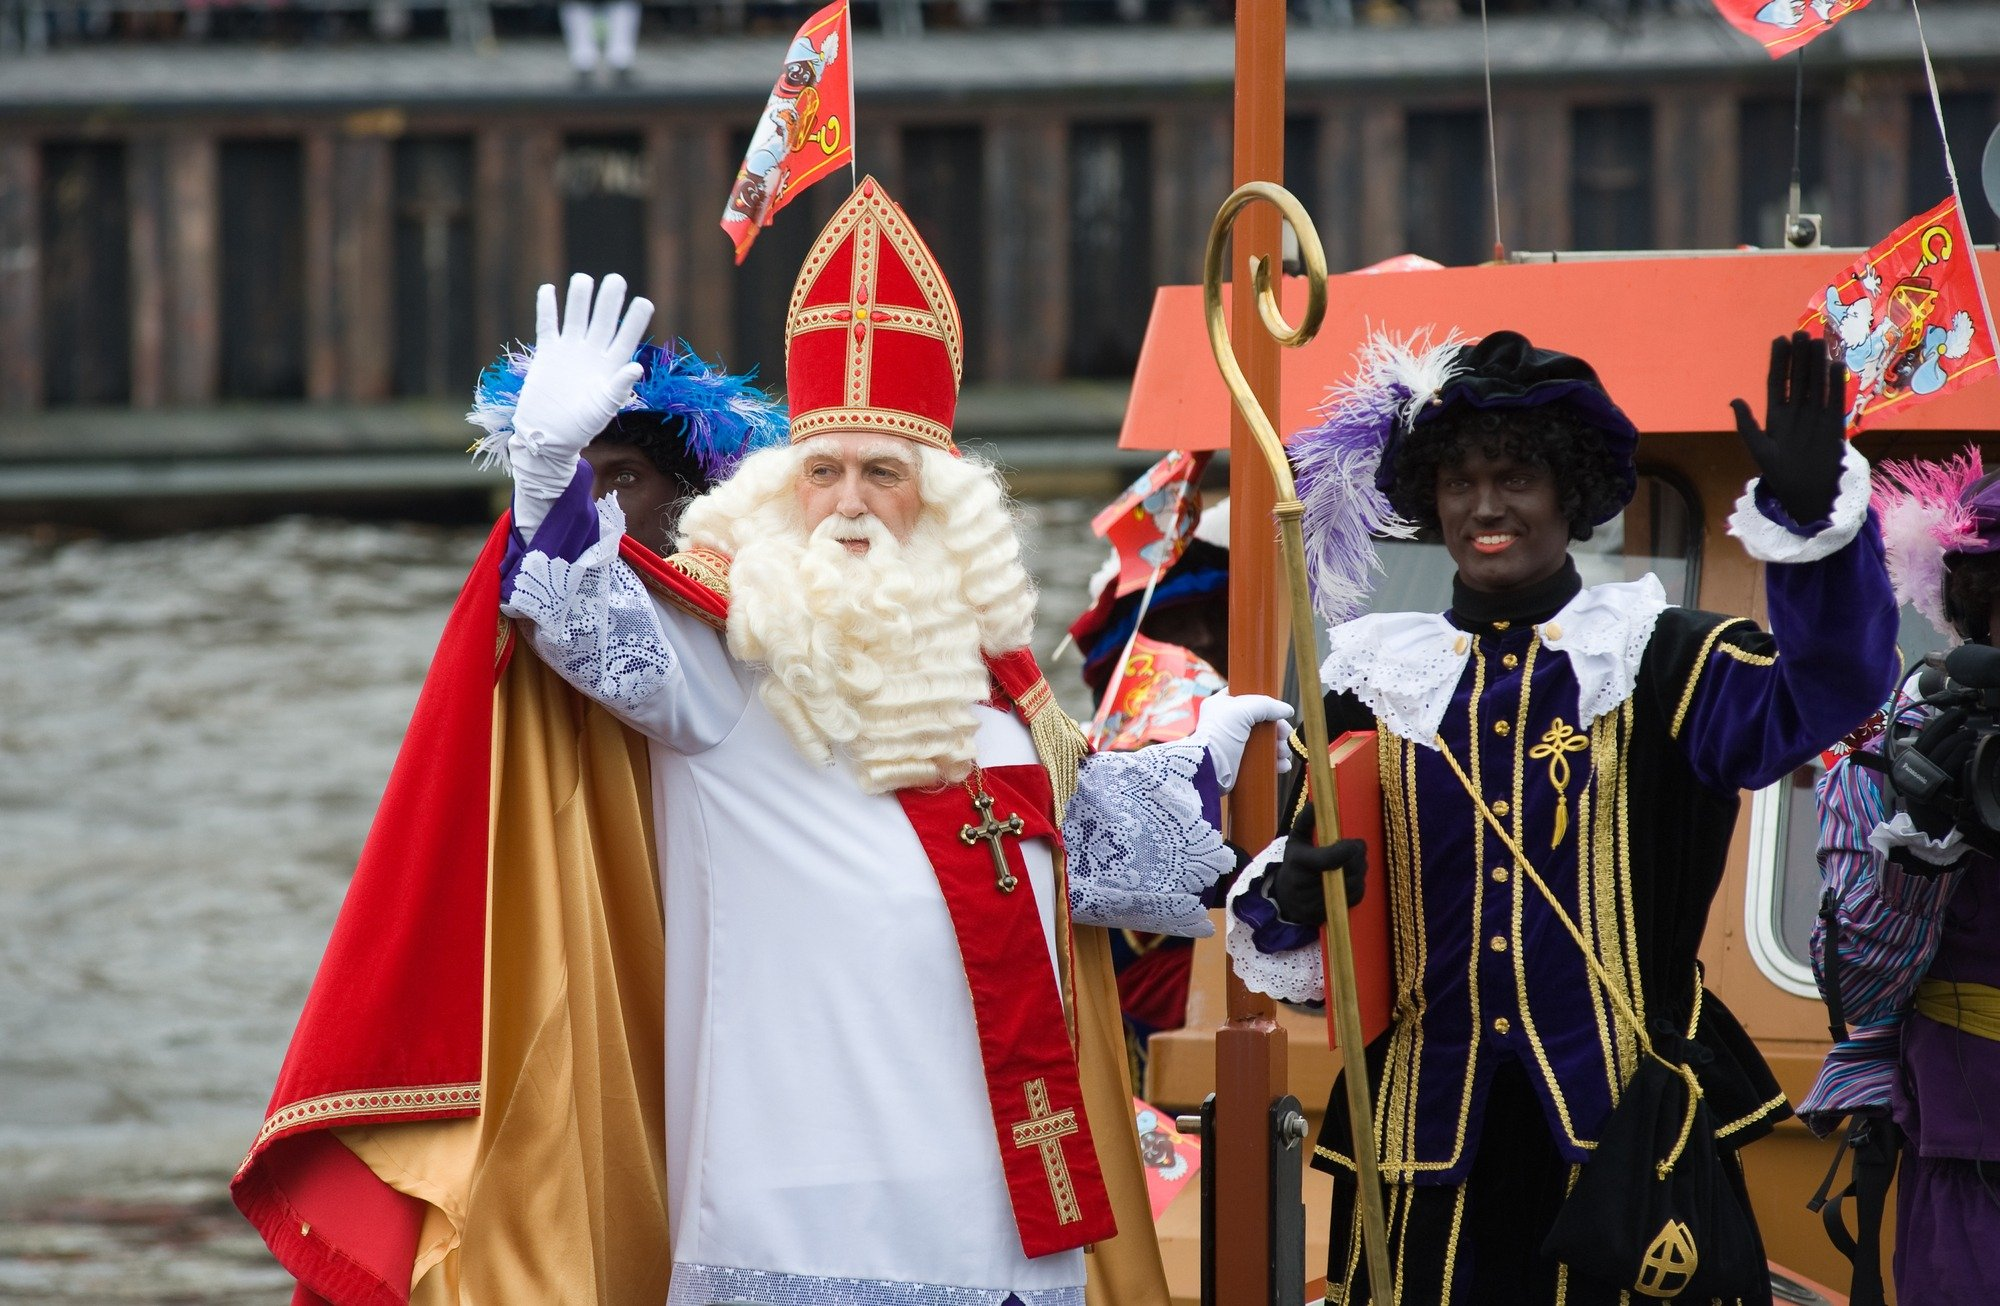 Sinterklaas and Black Peter are wacky and controversial traditions in Europe